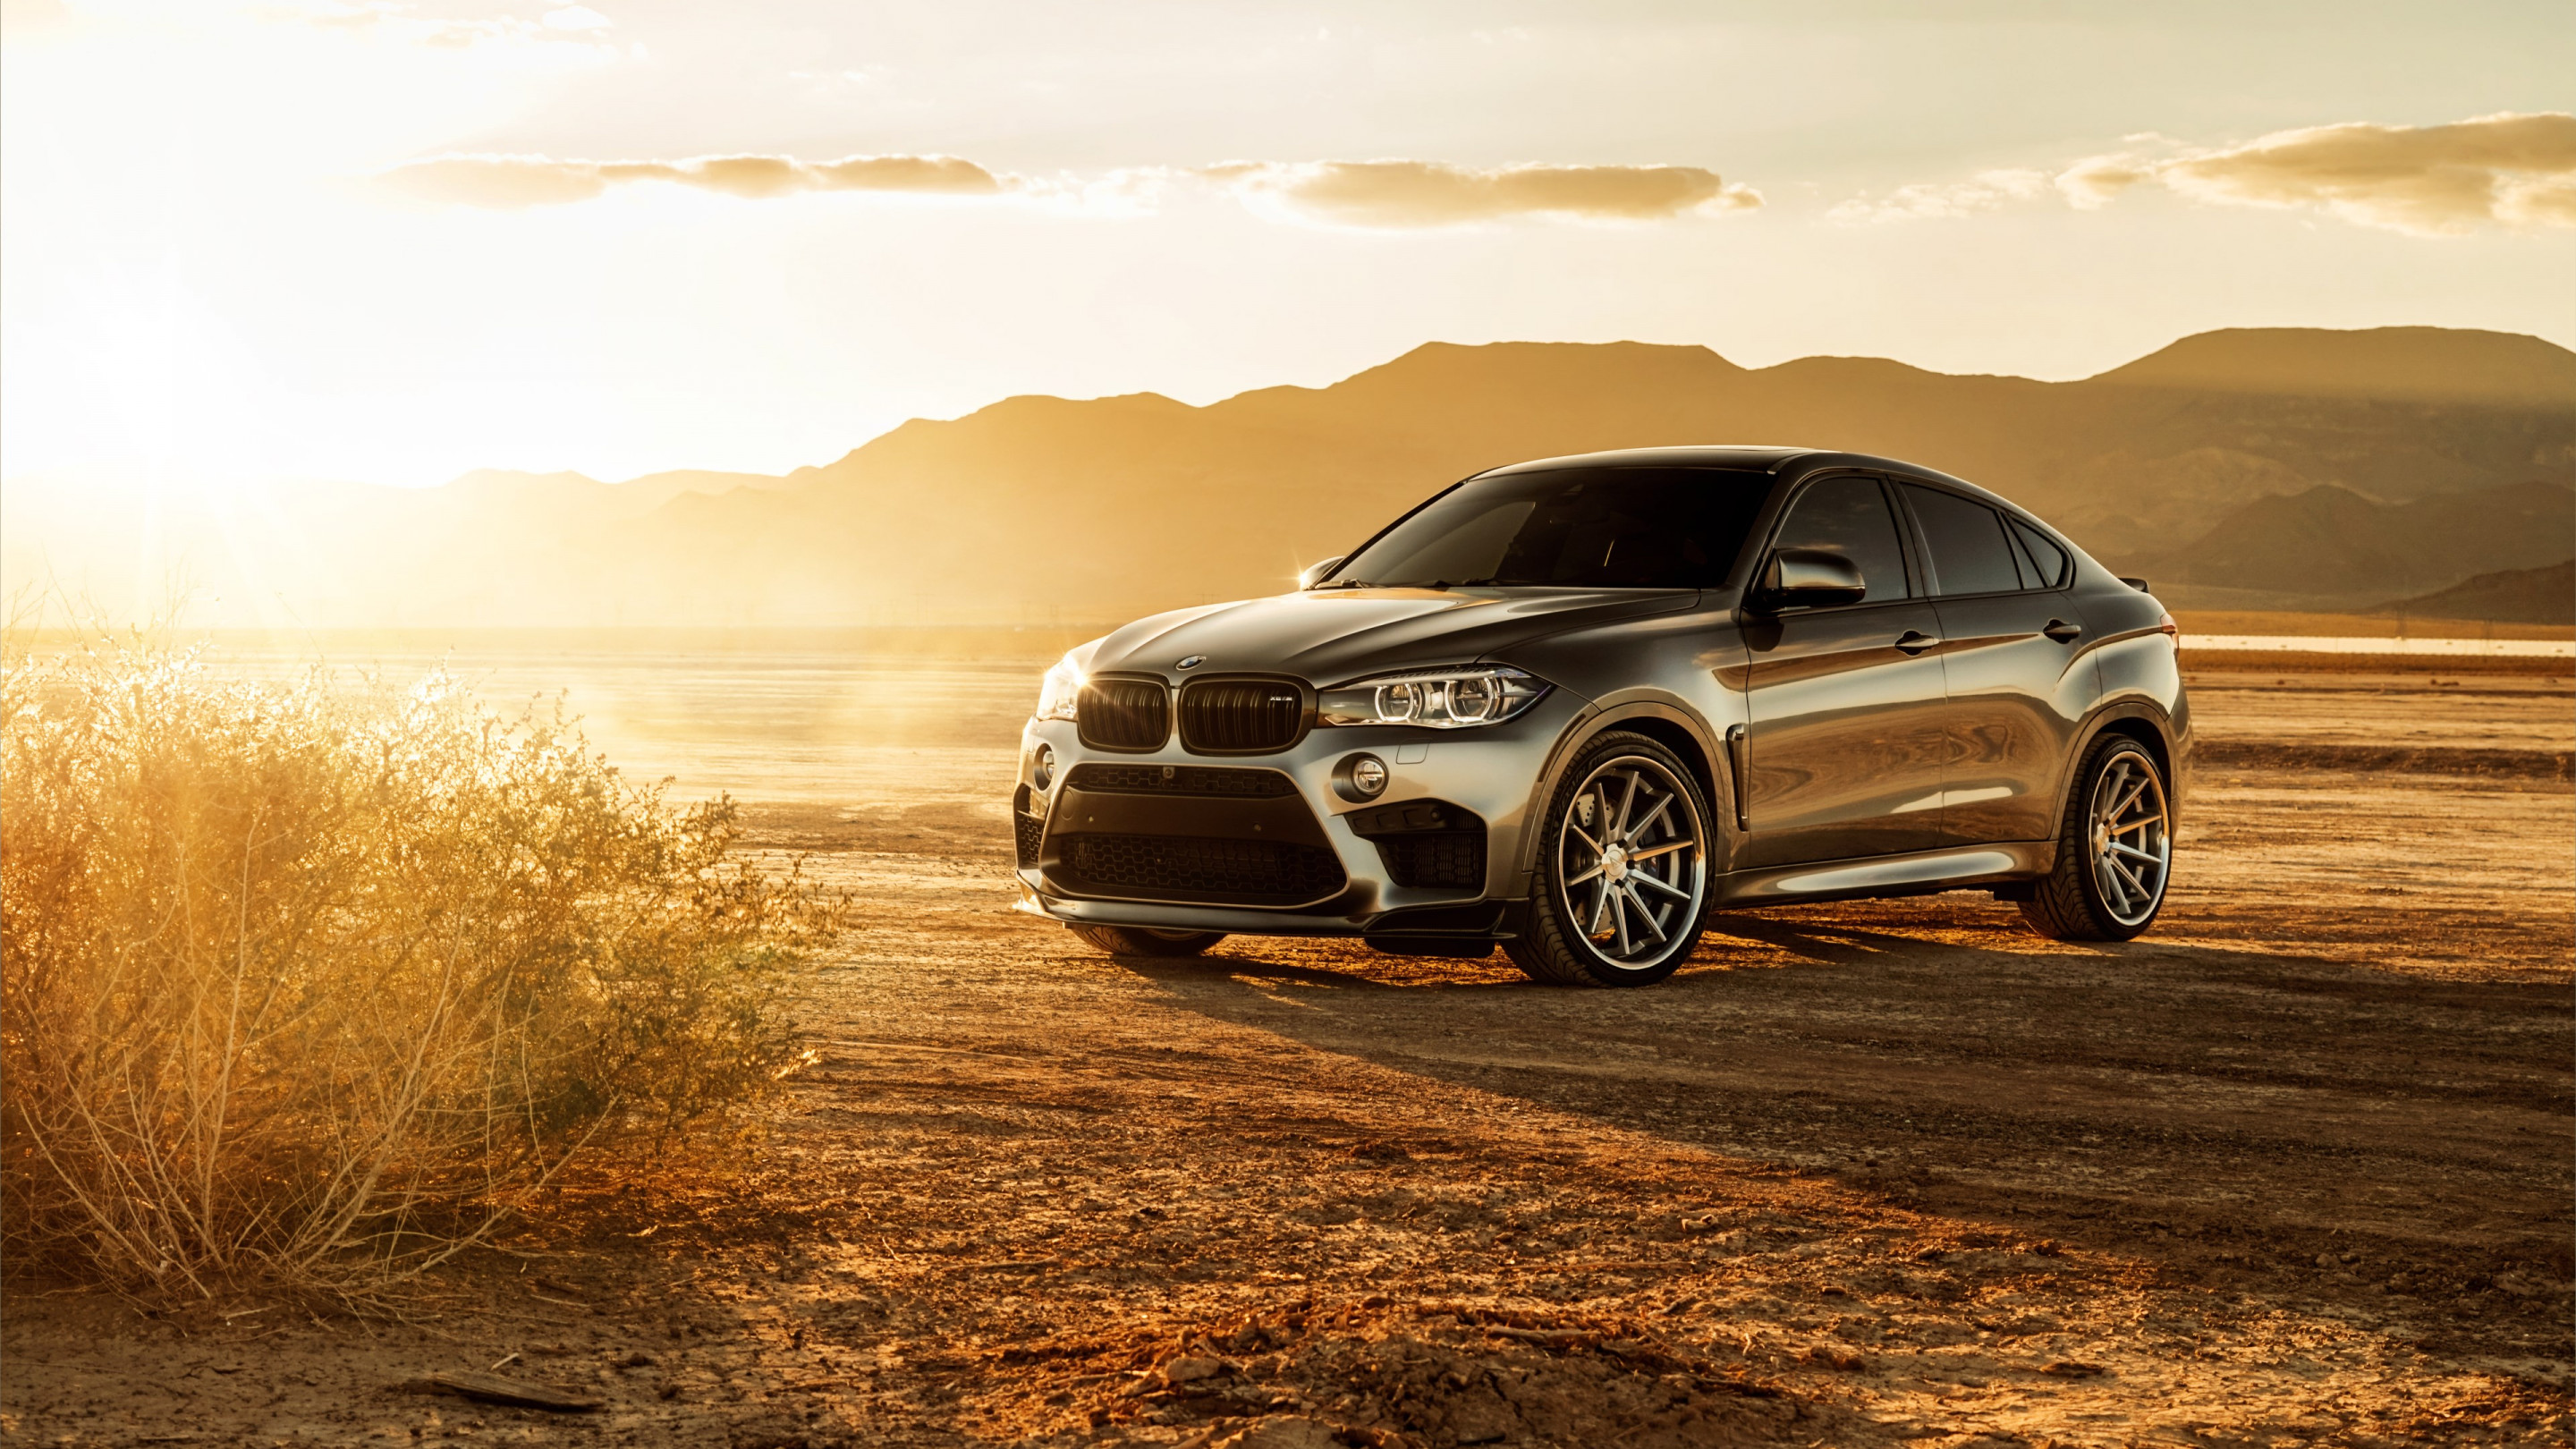 Ferrada BMW X6M Glory | 2880x1620 wallpaper